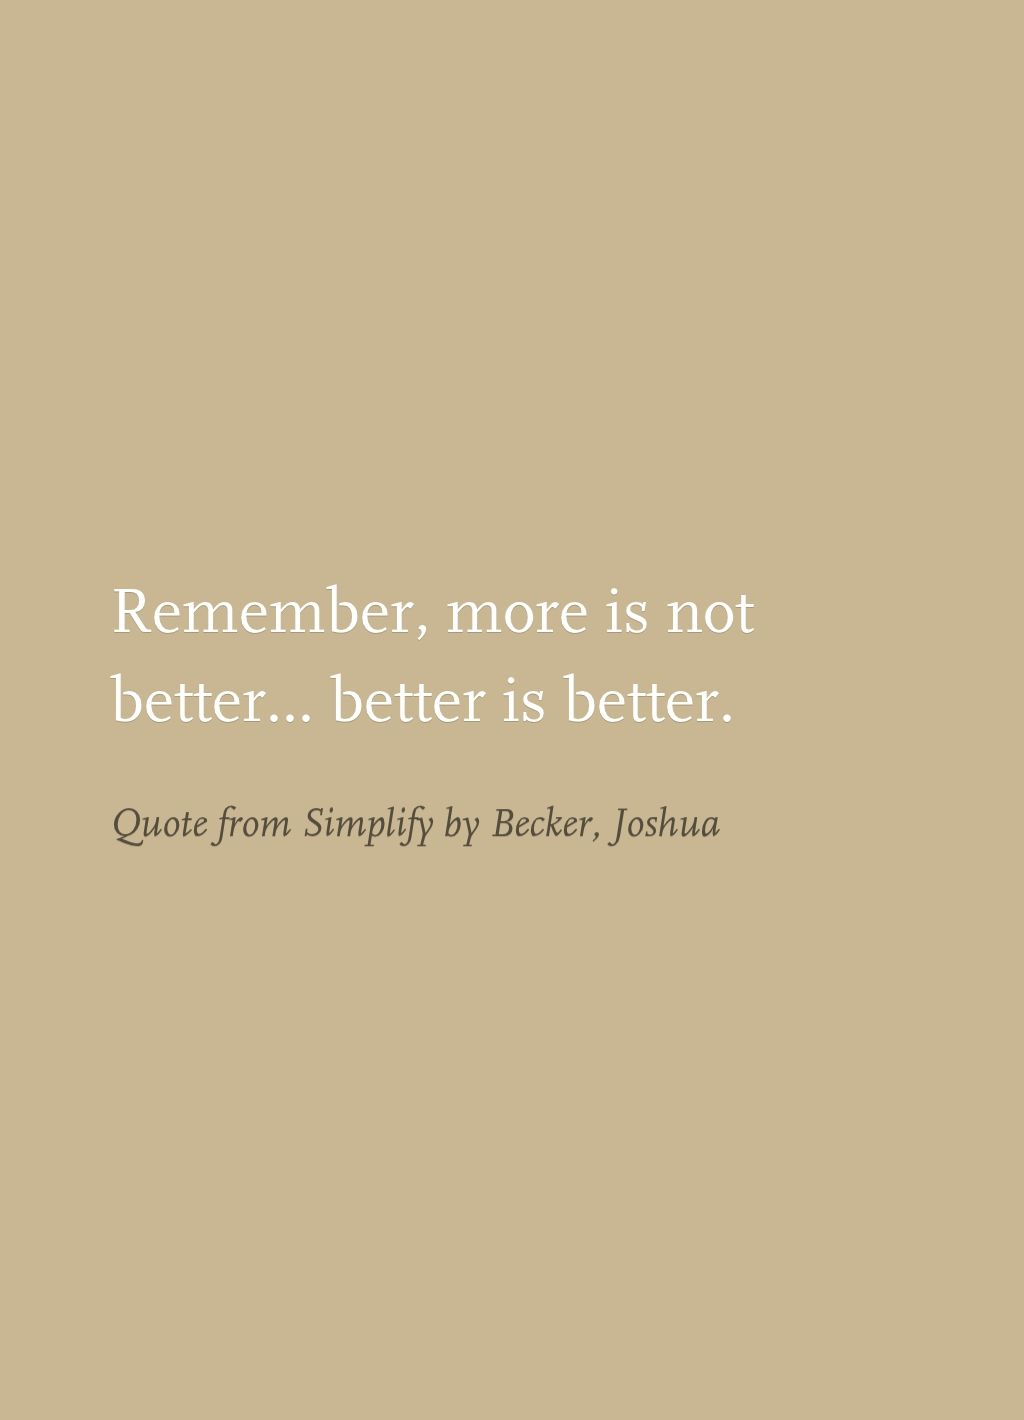 Simplify Life Quotes Quote From Simplifybecker Joshua  Minimalism  Pinterest